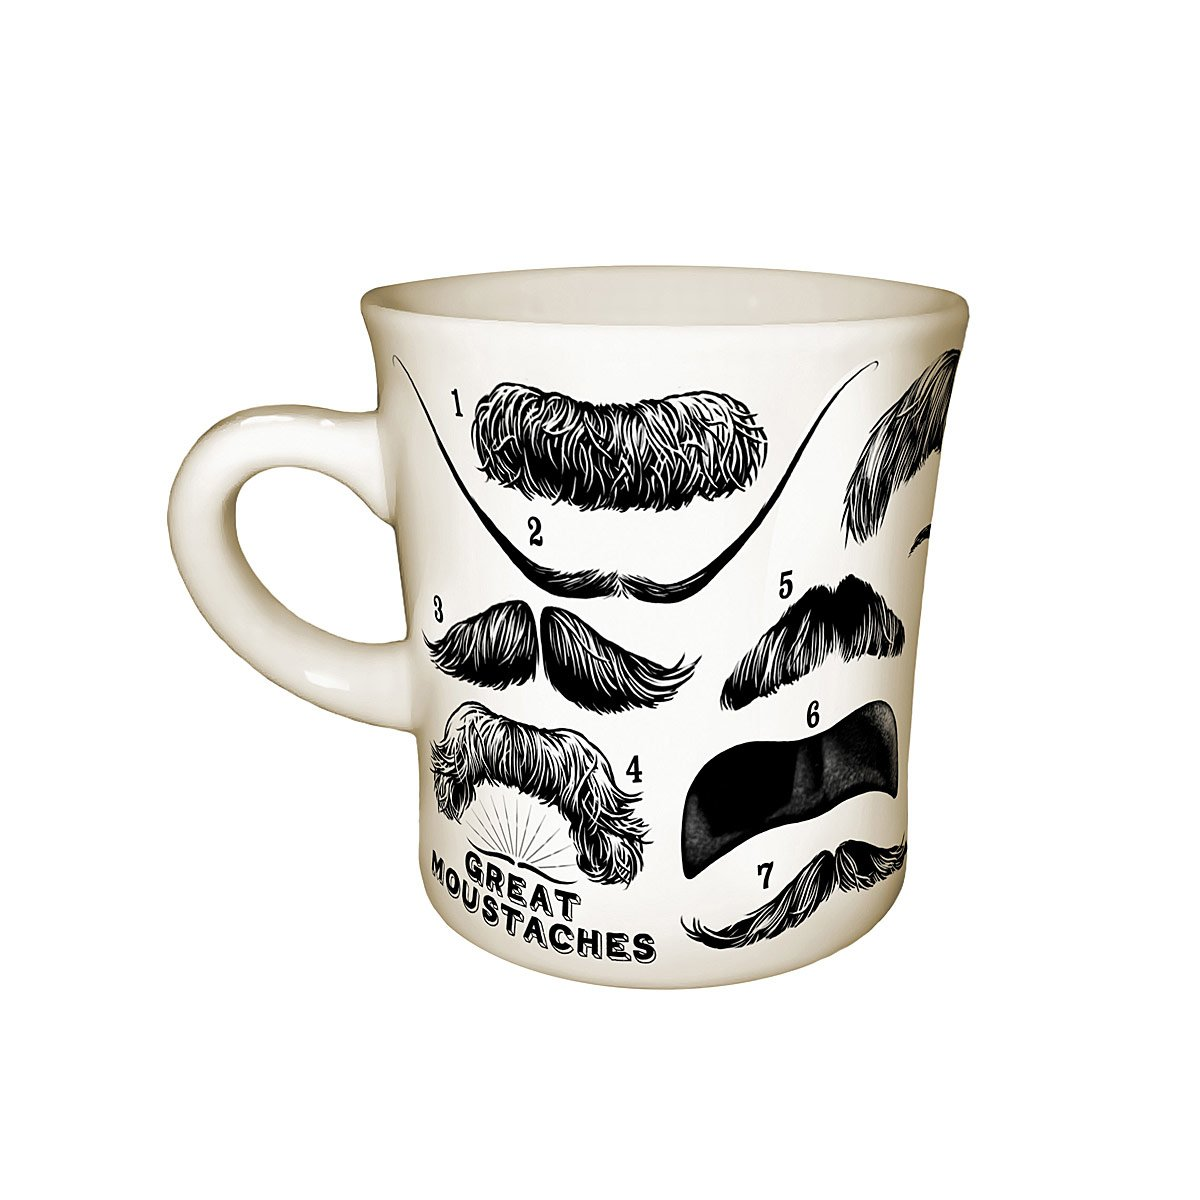 Howling Moustaches Mug Coffee Tea Mugs Uncommongoods Shaped Coffee Mugs Wholesale Shaped Coffee Mugs furniture Funny Shaped Coffee Mugs